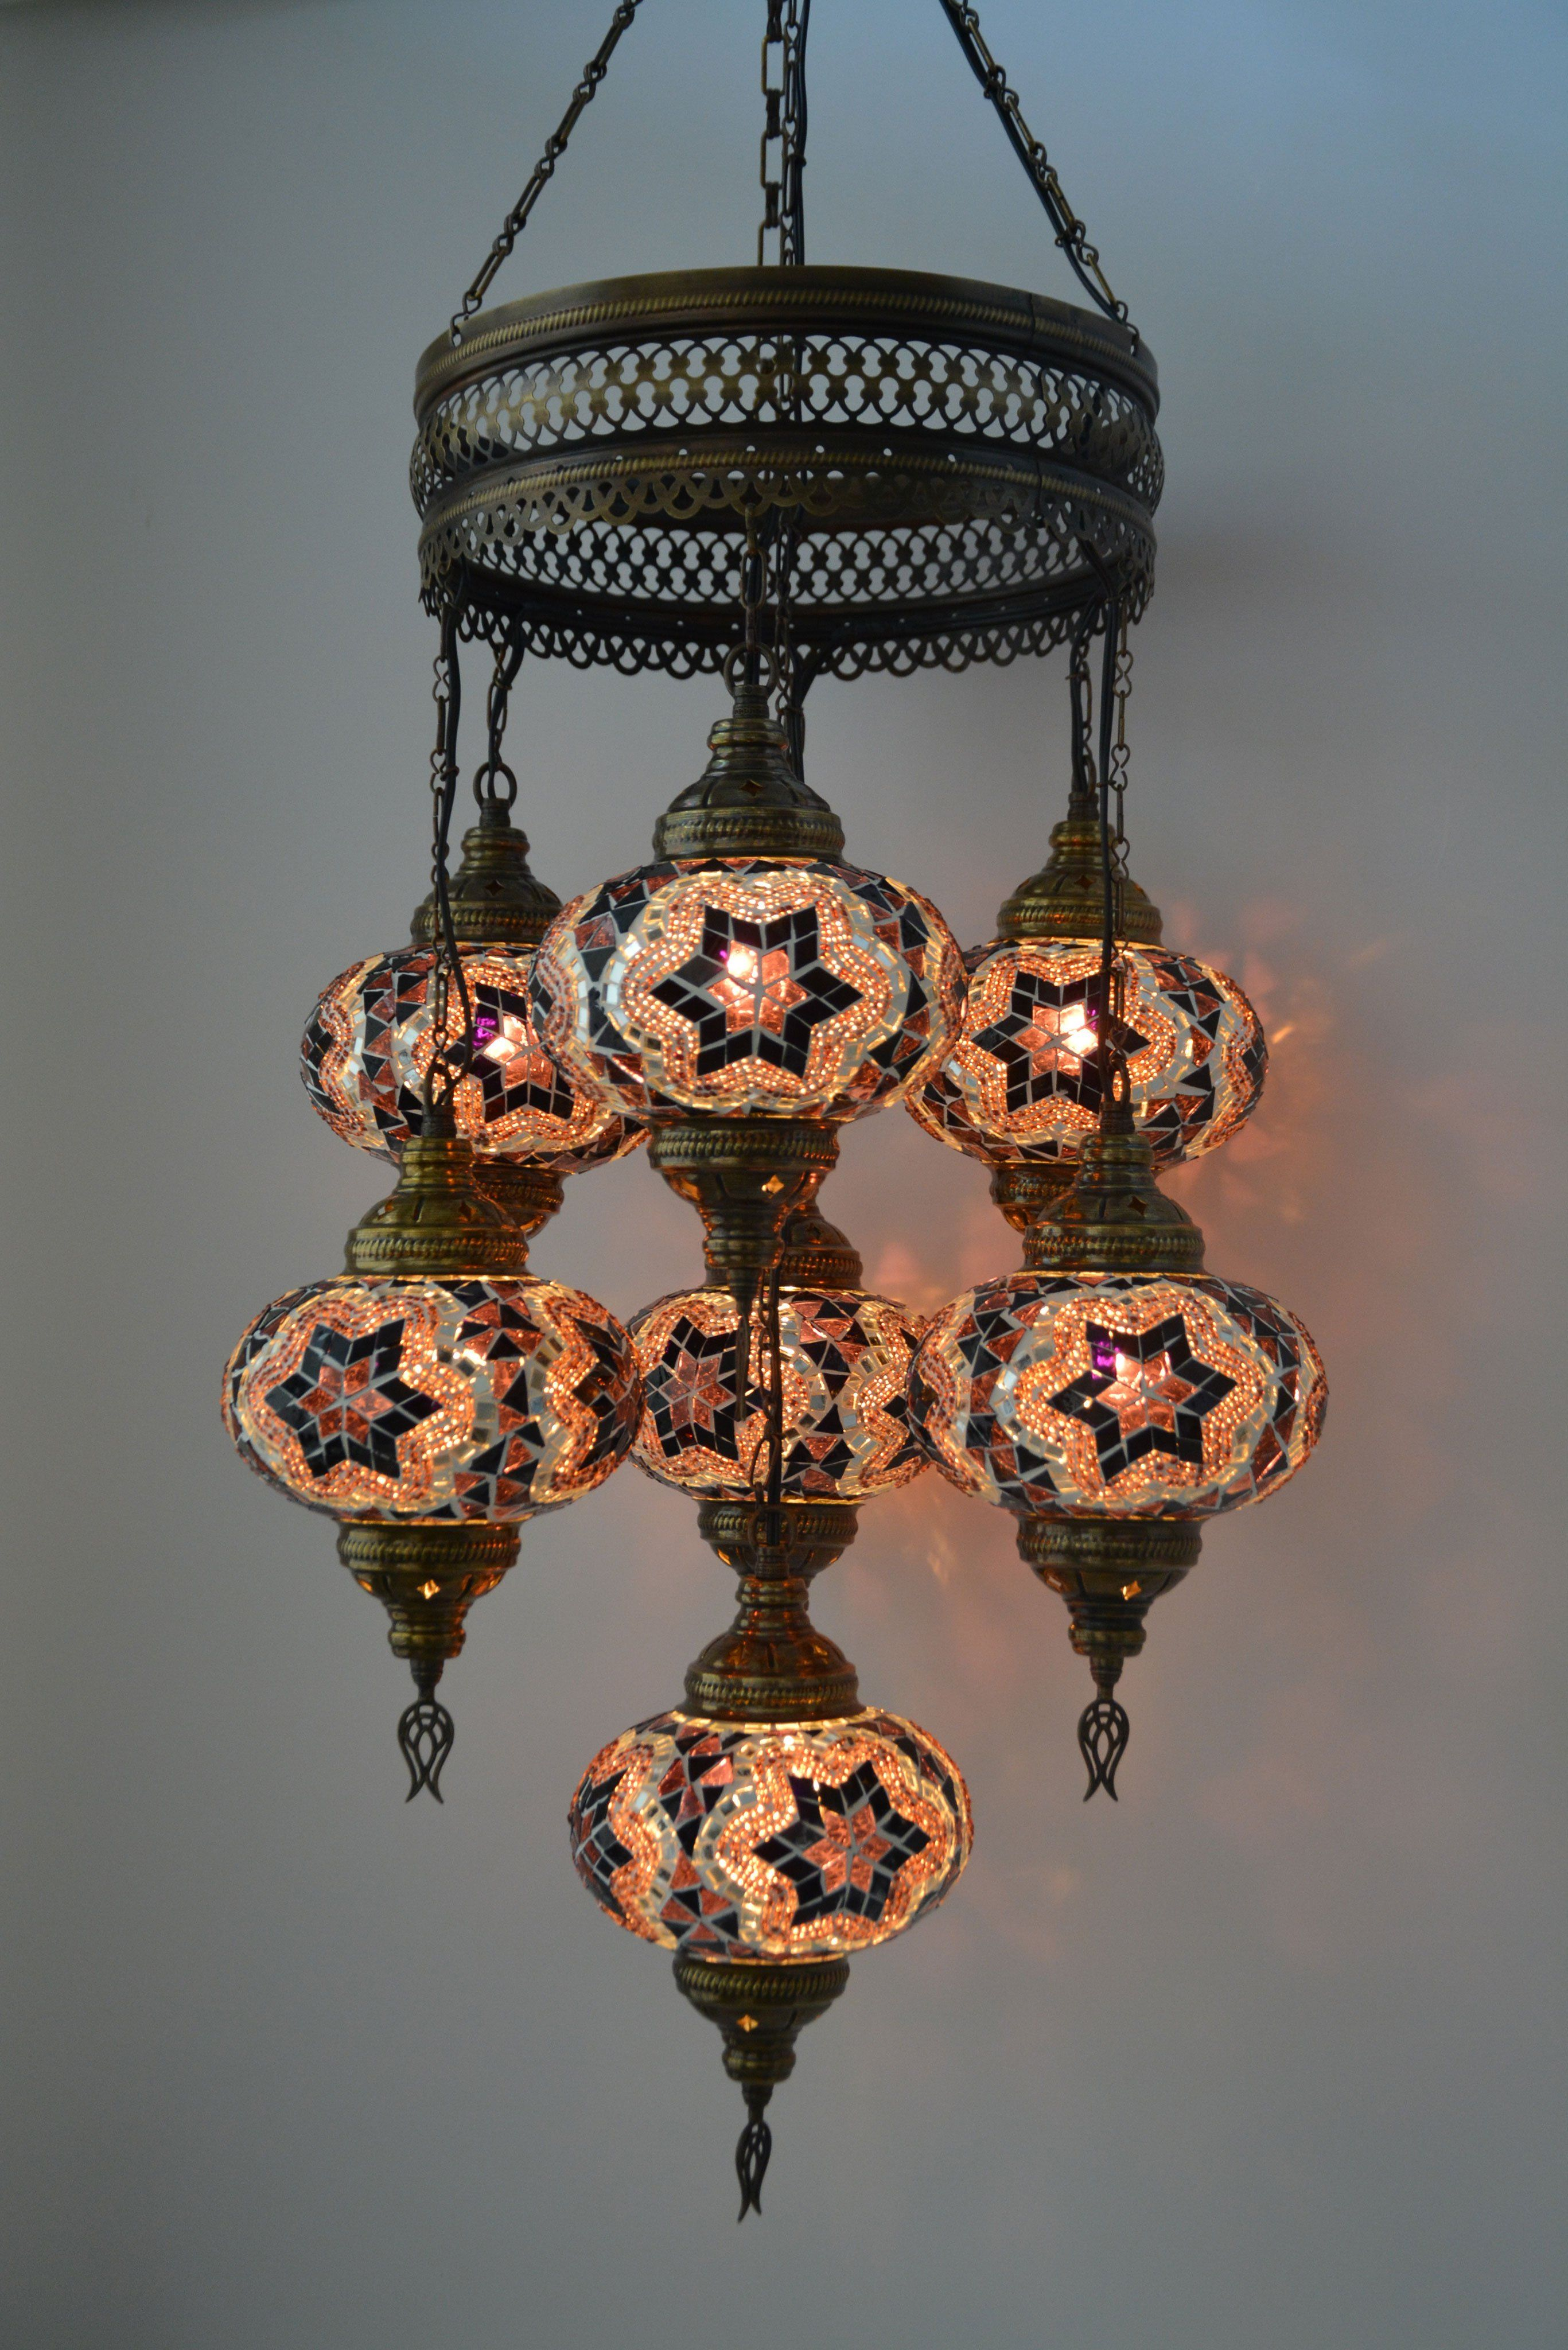 7 glass globe turkish moroccan chandelier lighting fixture 7 glass globe turkish moroccan chandelier lighting fixture lamptastic arubaitofo Gallery